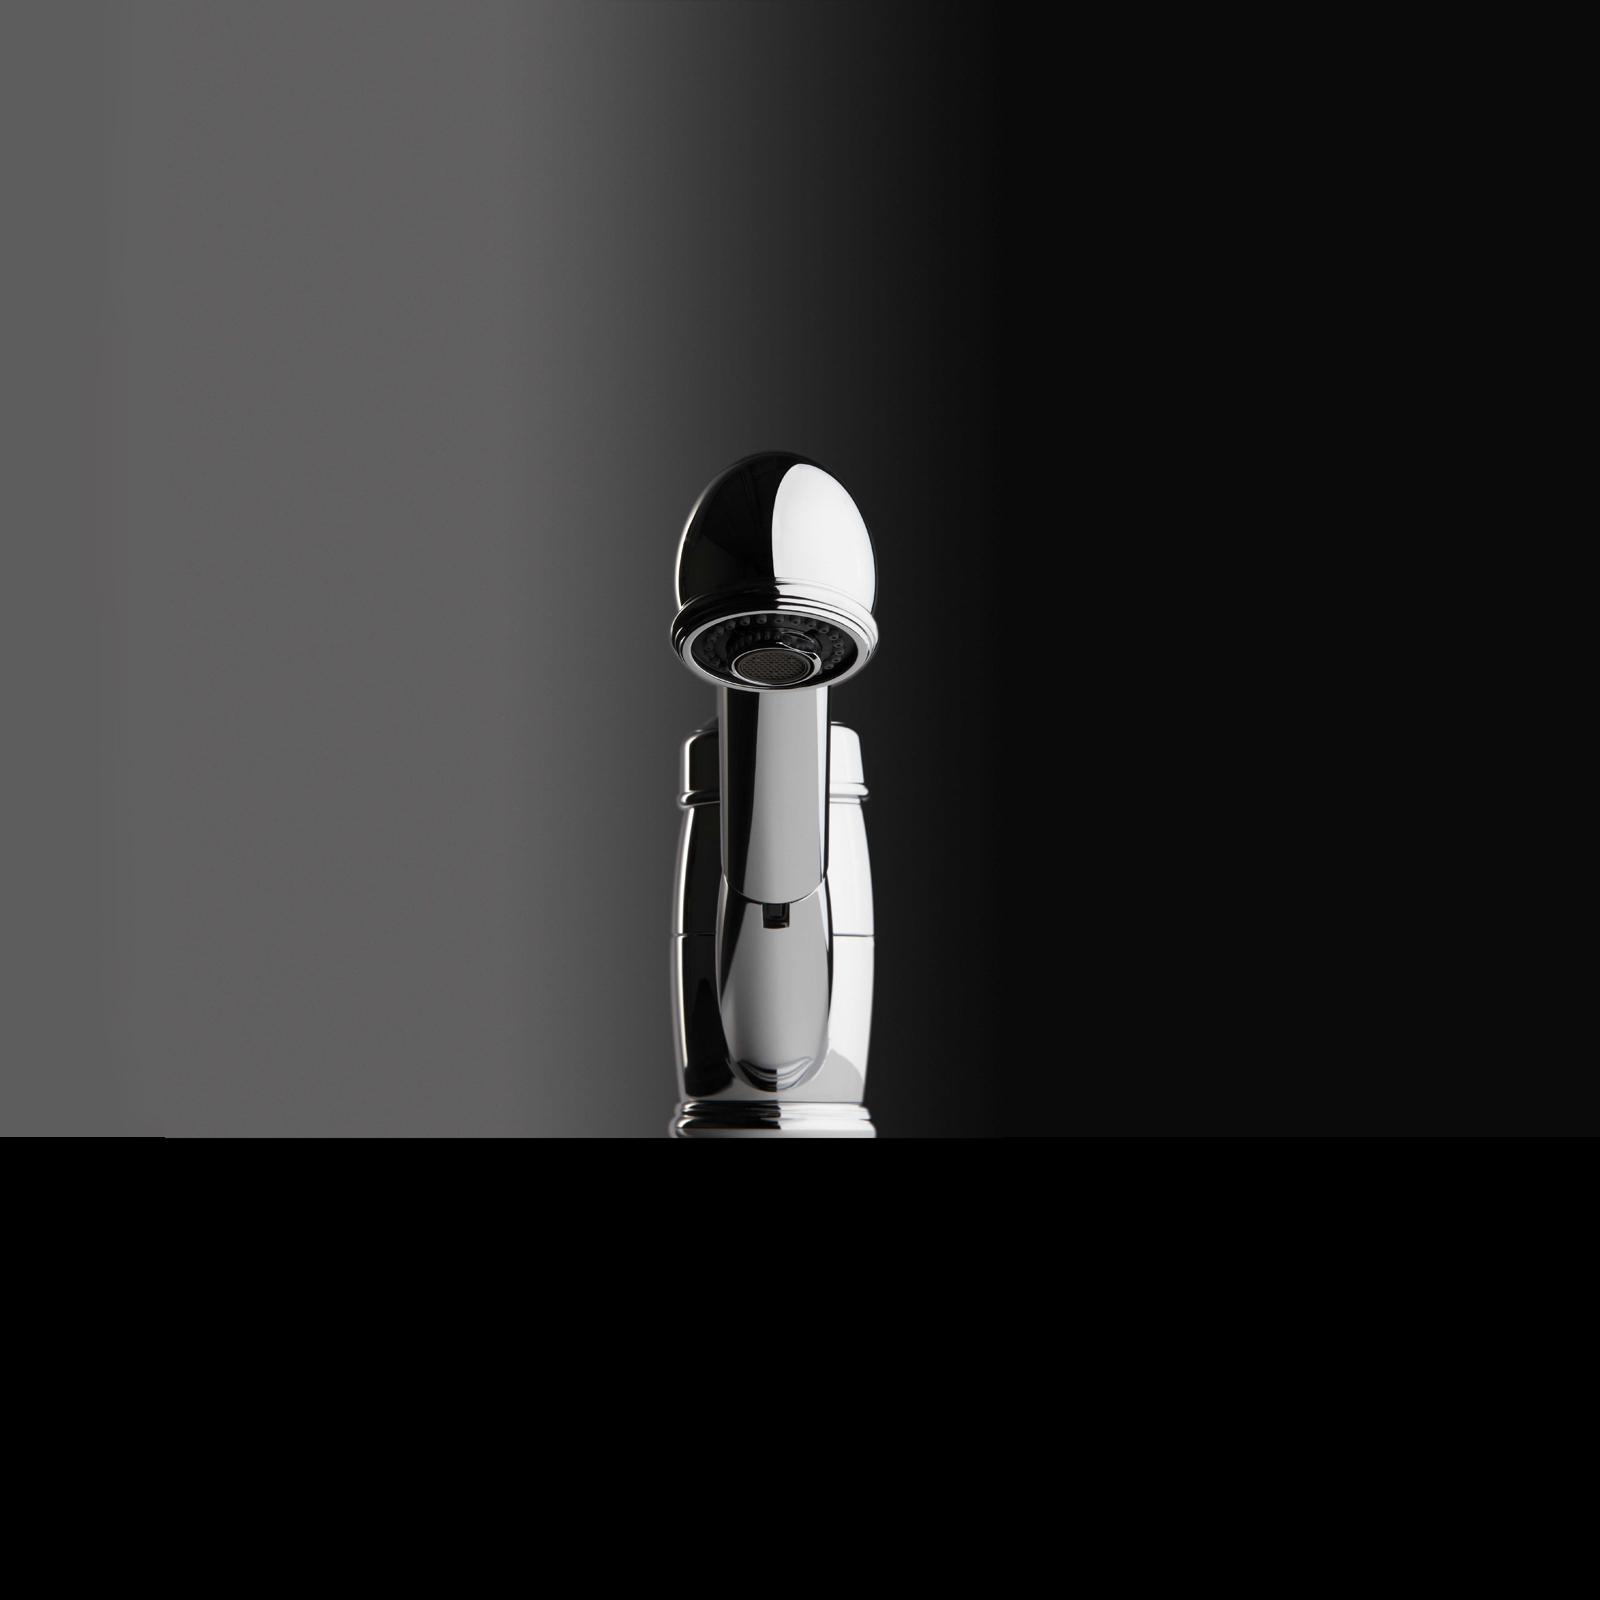 High-quality single lever tap Lionor - pull out spray - Chrome - ambience 2